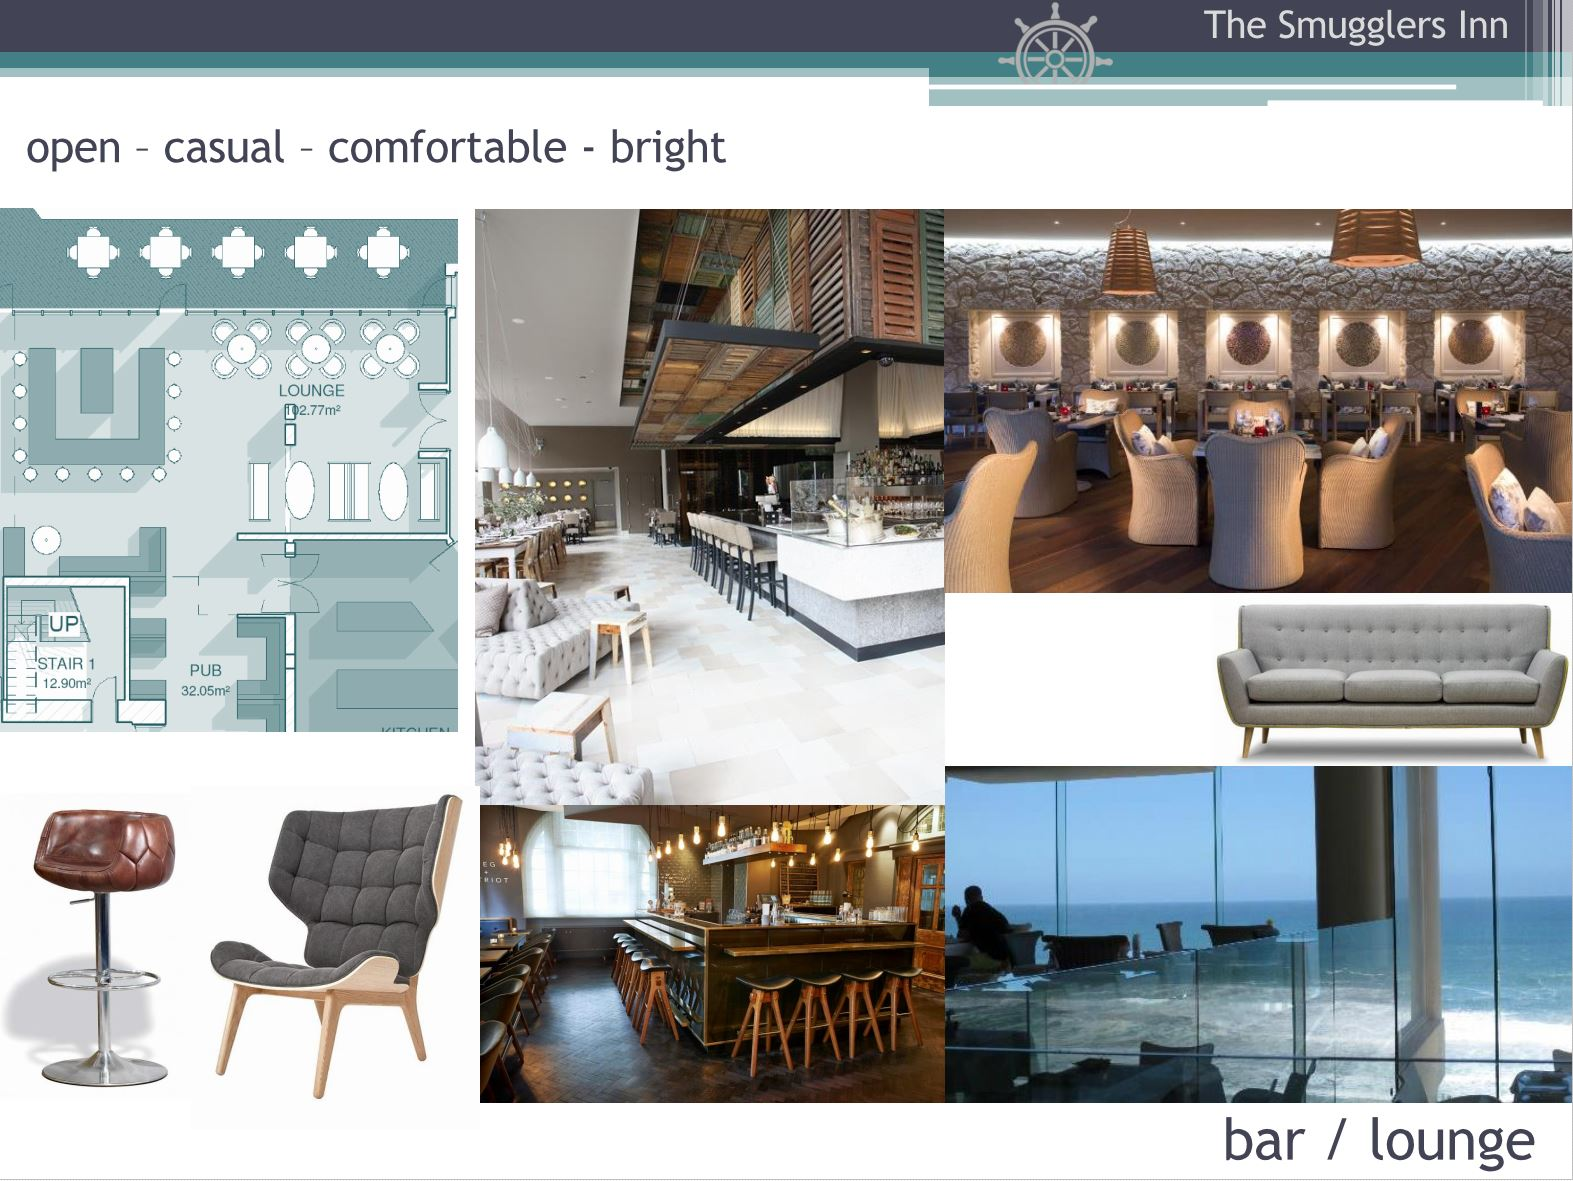 Hotel Fitout-Smugglers Inn-Mood Board Bar